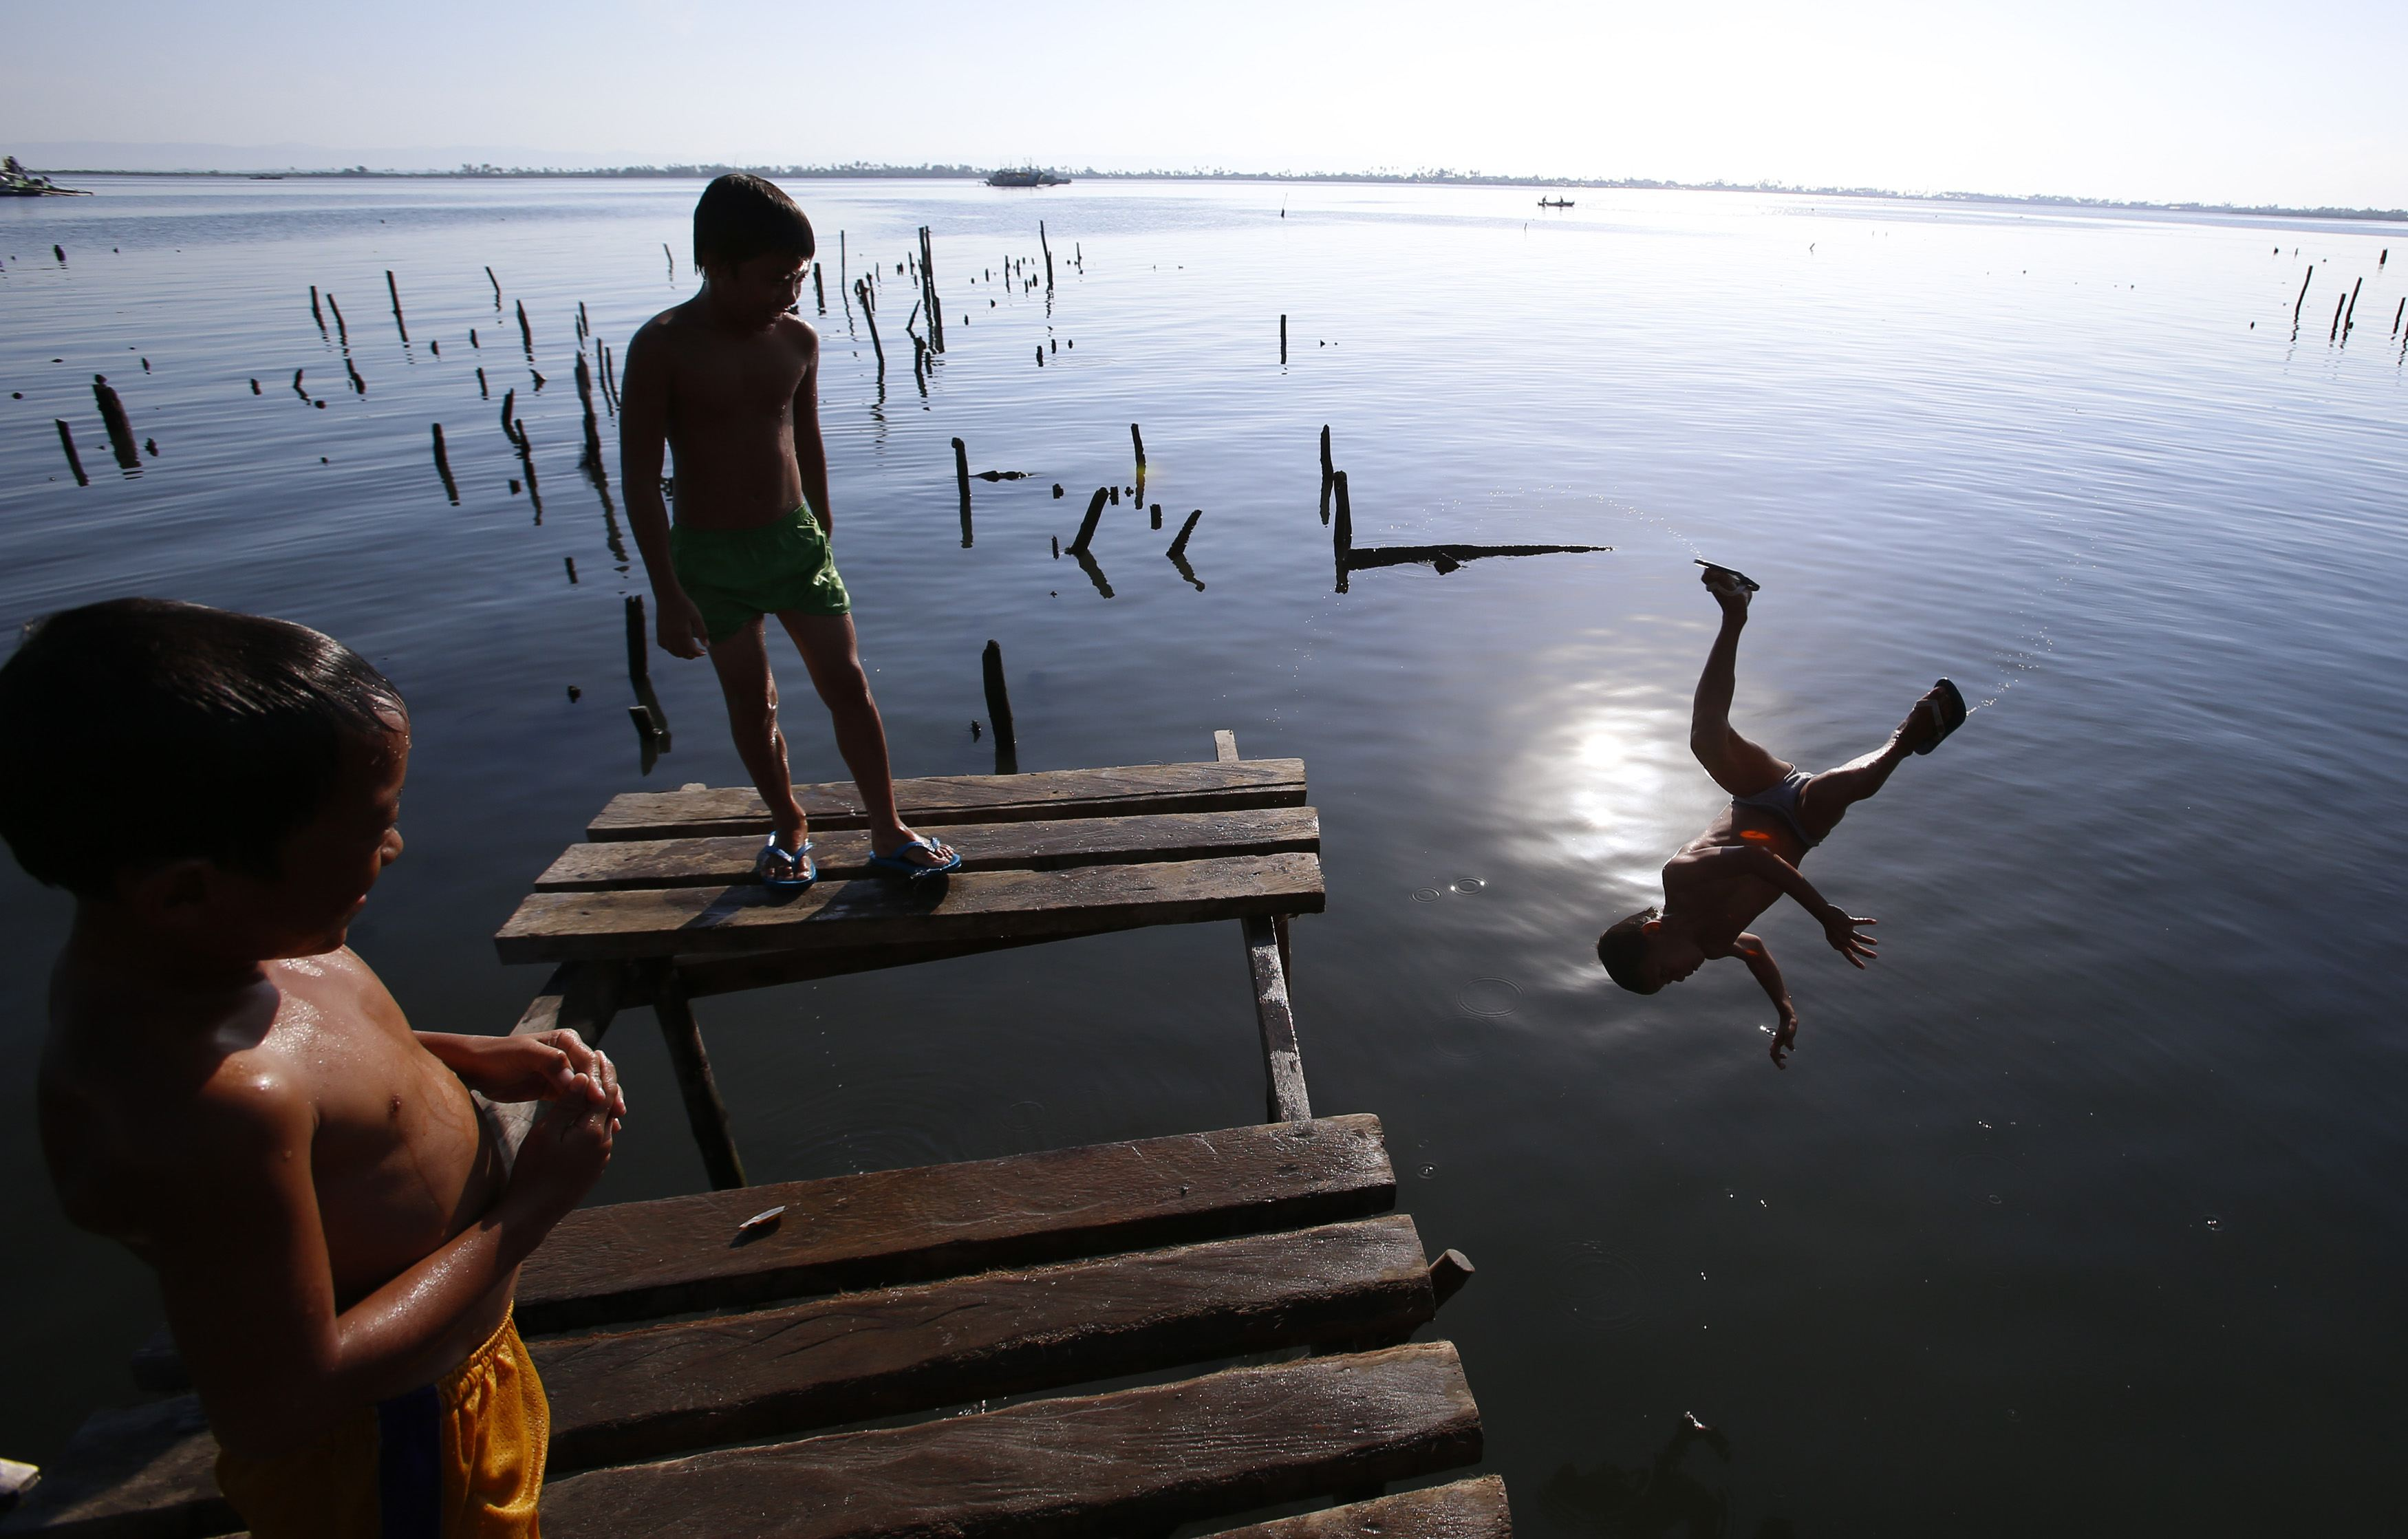 Boys jump from a cut-off foot bridge, which was damaged by Typhoon Haiyan, at a typhoon devastated coastal village in Tacloban city in central Philippines November 7, 2014. Almost 25,000 people still live in tents, shelters and bunkhouses in the hardest hit regions in central Philippines, including Tacloban City, considered Haiyan's ground zero as it accounted for almost half of the death toll. The Philippines are preparing to commemorate victims of Typhoon Haiyan, ahead of the one-year anniversary of the disaster on November 8, according to a government official